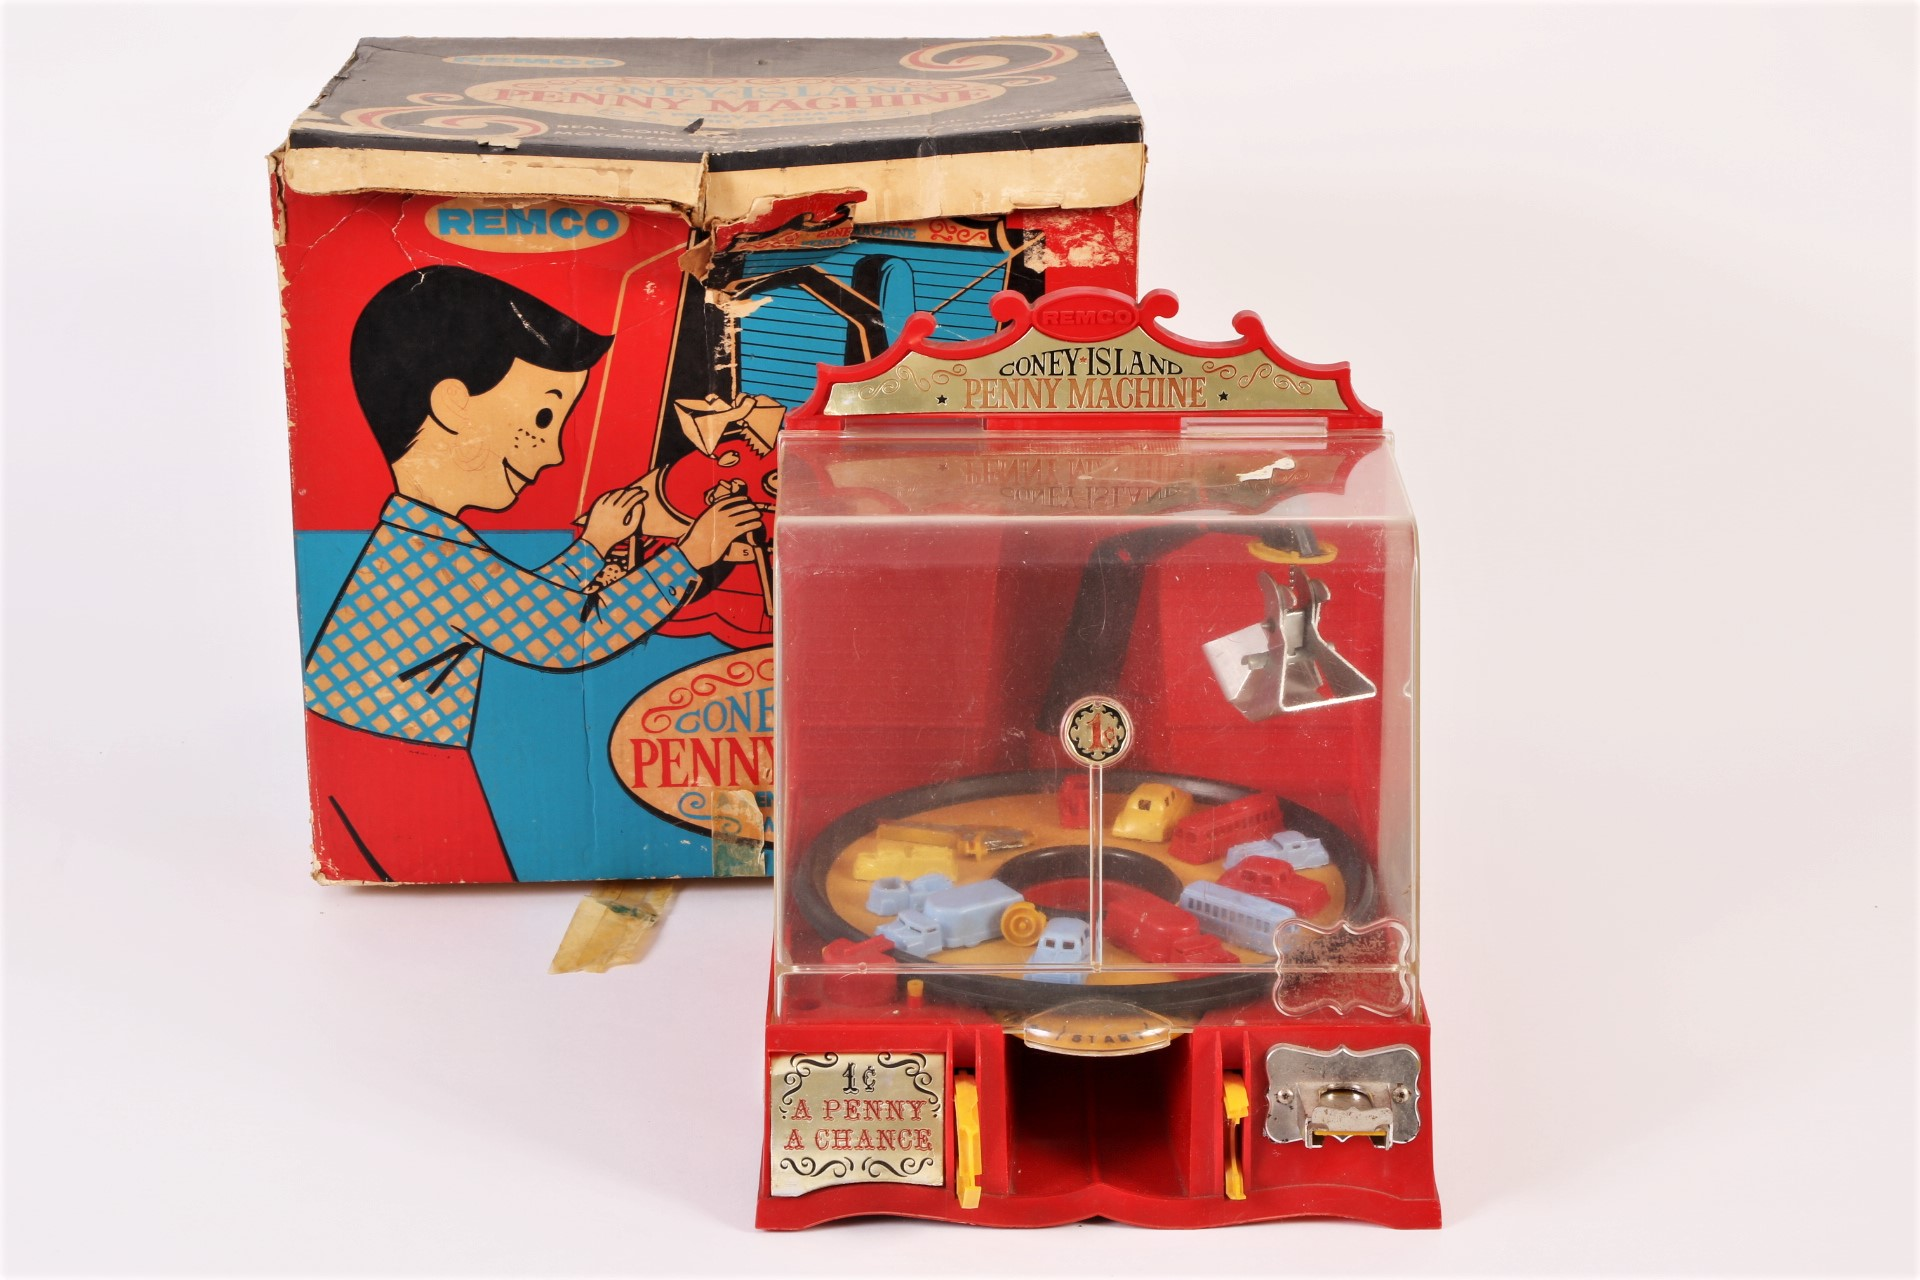 Remco Coney Island Penny Machine 704 62436 Black Rock Galleries